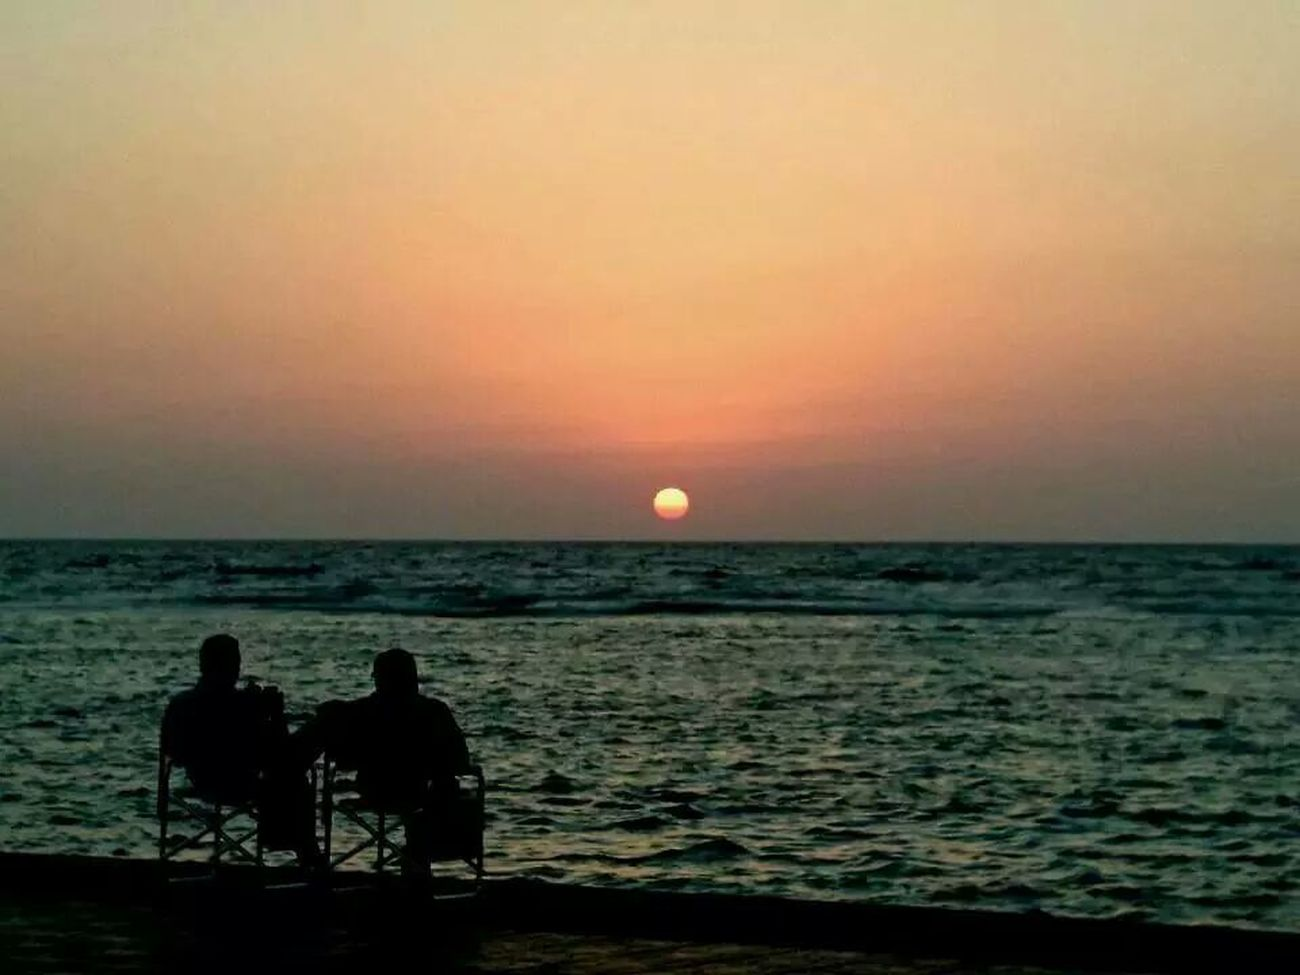 The EyeEm Facebook Cover Challenge Me & my wife enjoy our Sunset Enjoying The Sun Lovers Taking Photos Husband And Wife Enjoying The View